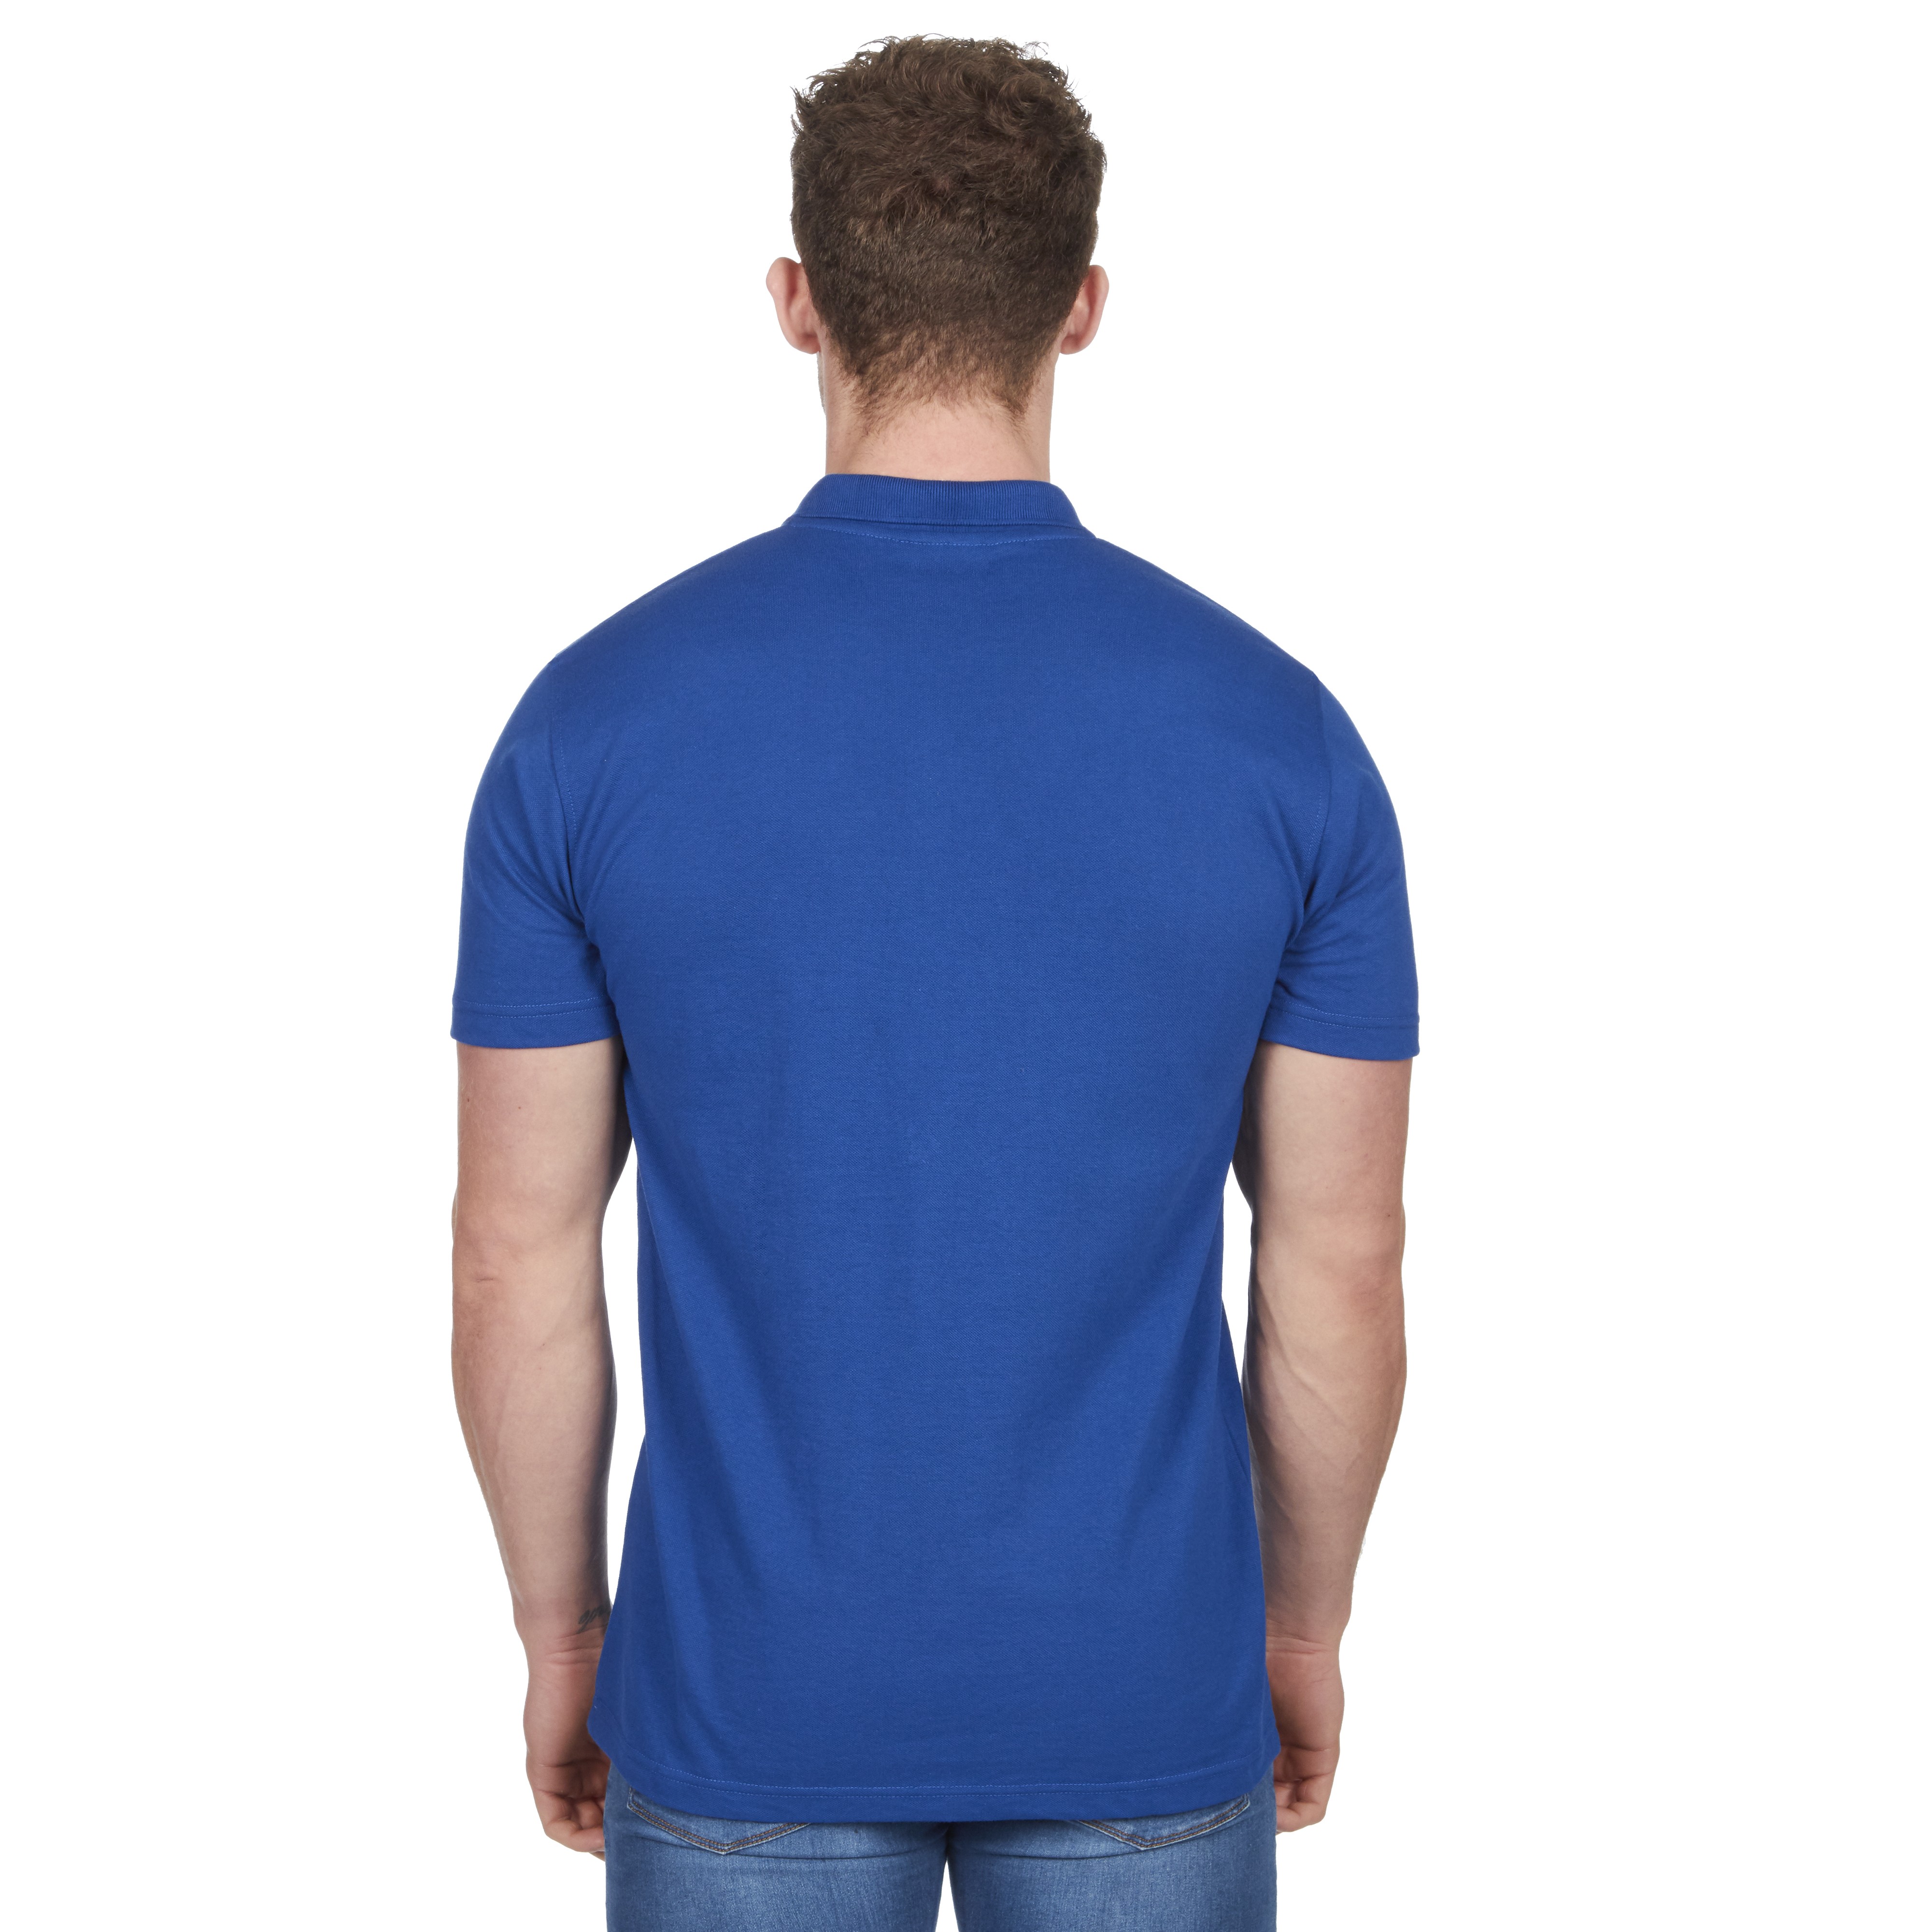 Mens-Classic-Polo-Top-Plus-Size-T-Shirt-Plain-Shirt-Big-And-Tall-Short-Sleeve thumbnail 45